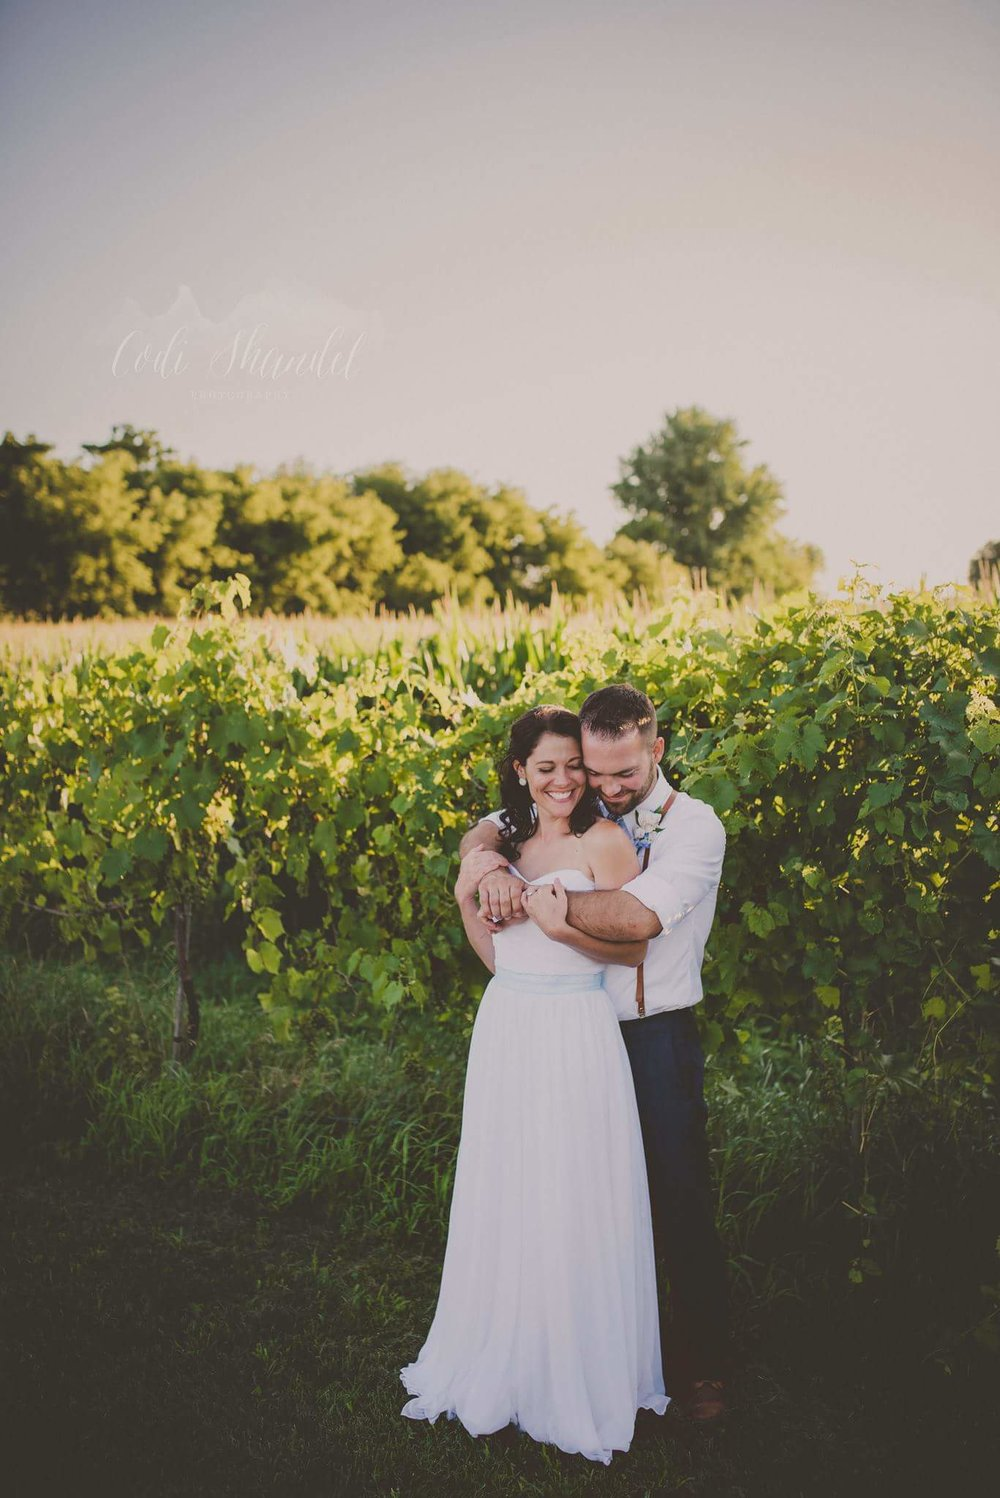 "2.  Codi Shandel Photography  ""Romance at its best! A vineyard, a gorgeous couple, a sweet, private moment...Perfection!"" -Danielle & Emily"